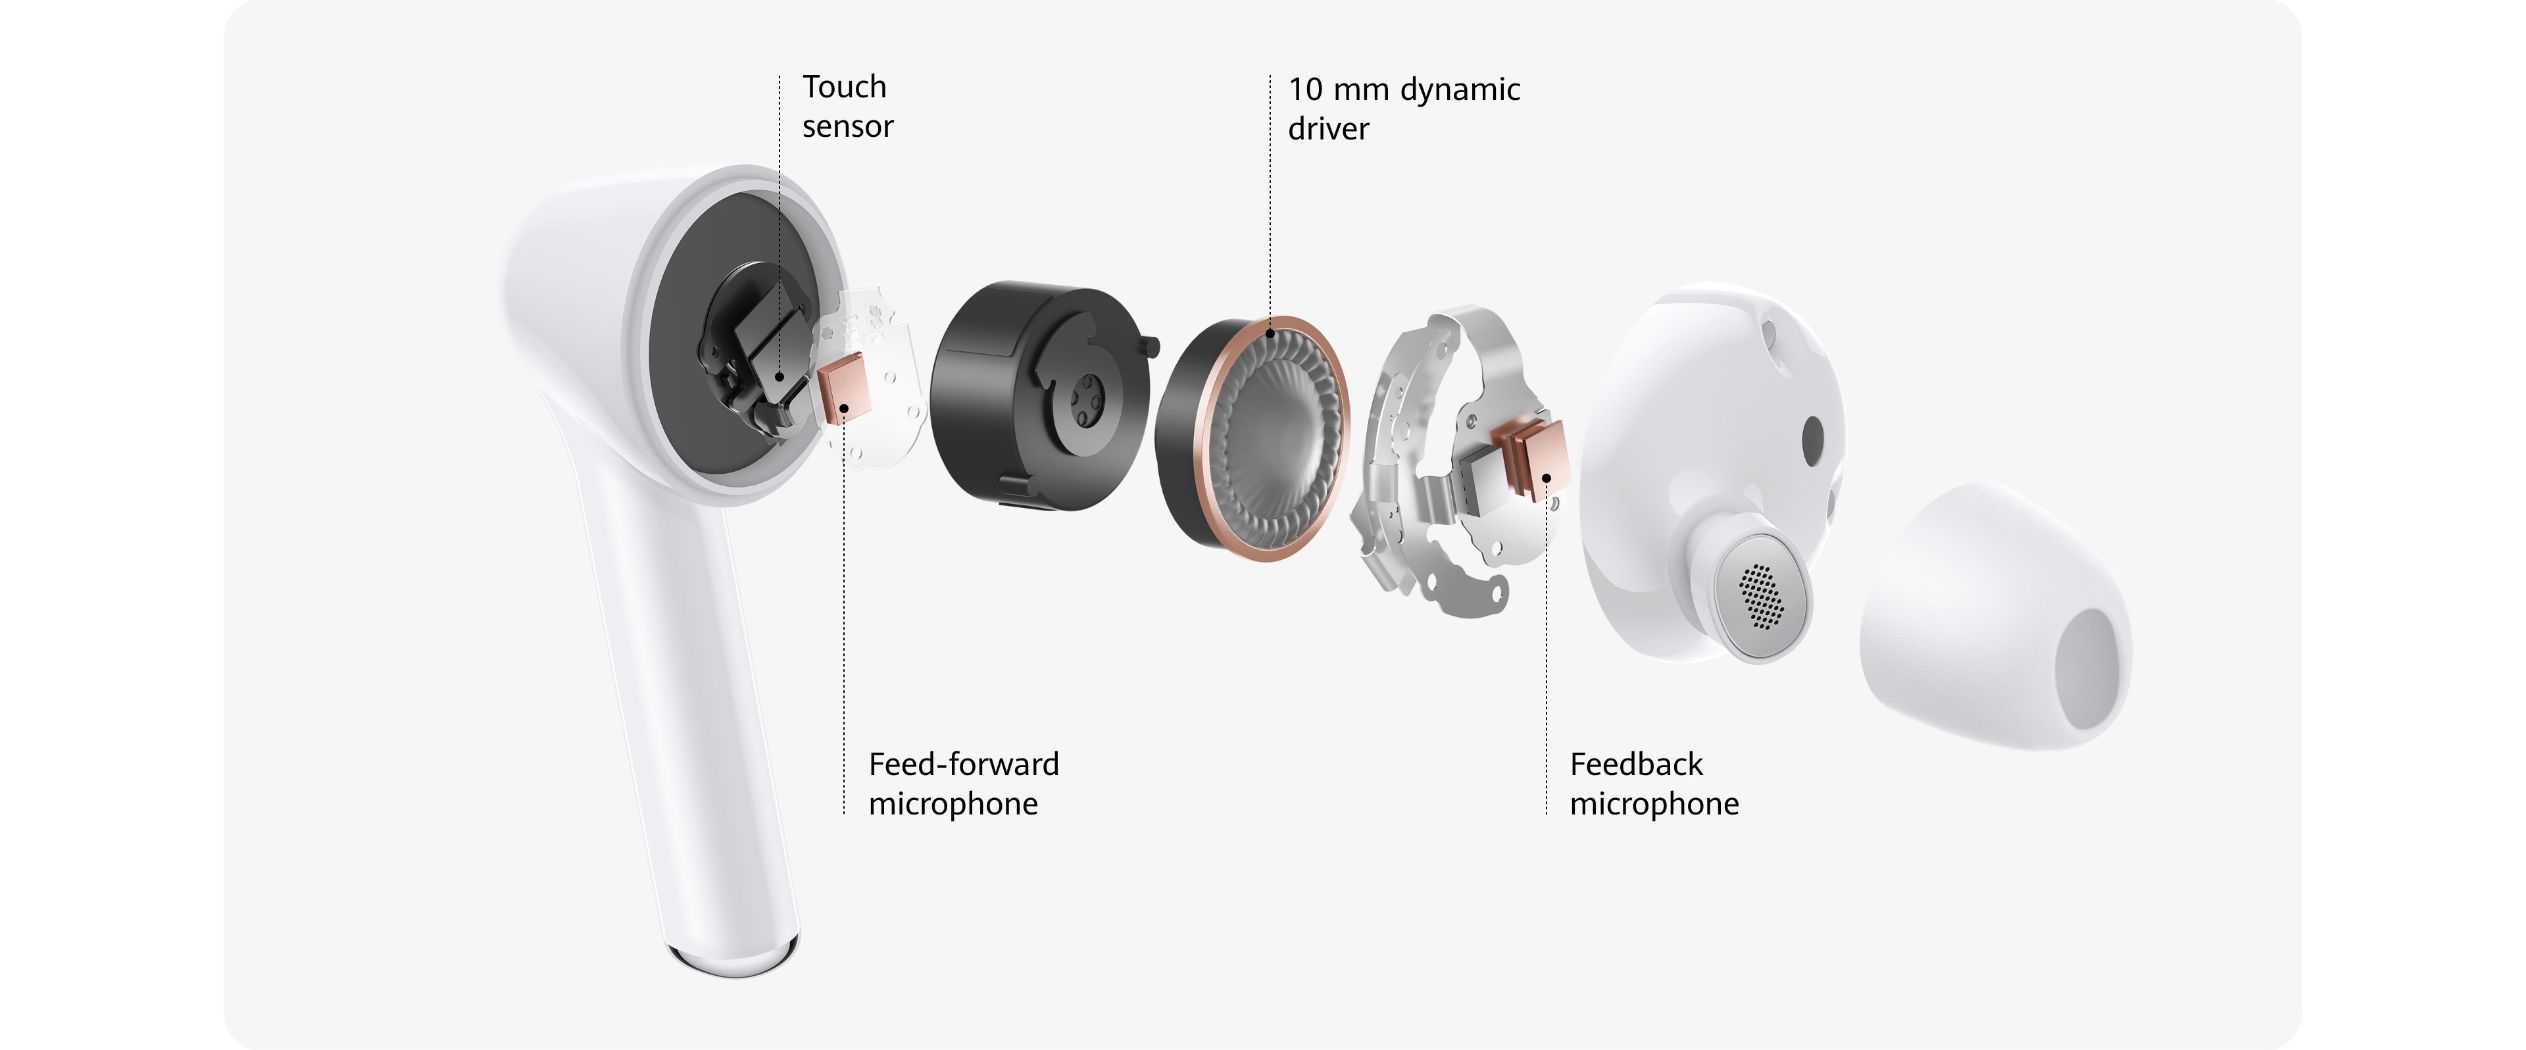 huawei freebuds 3i 10mm driver active noise cancellation